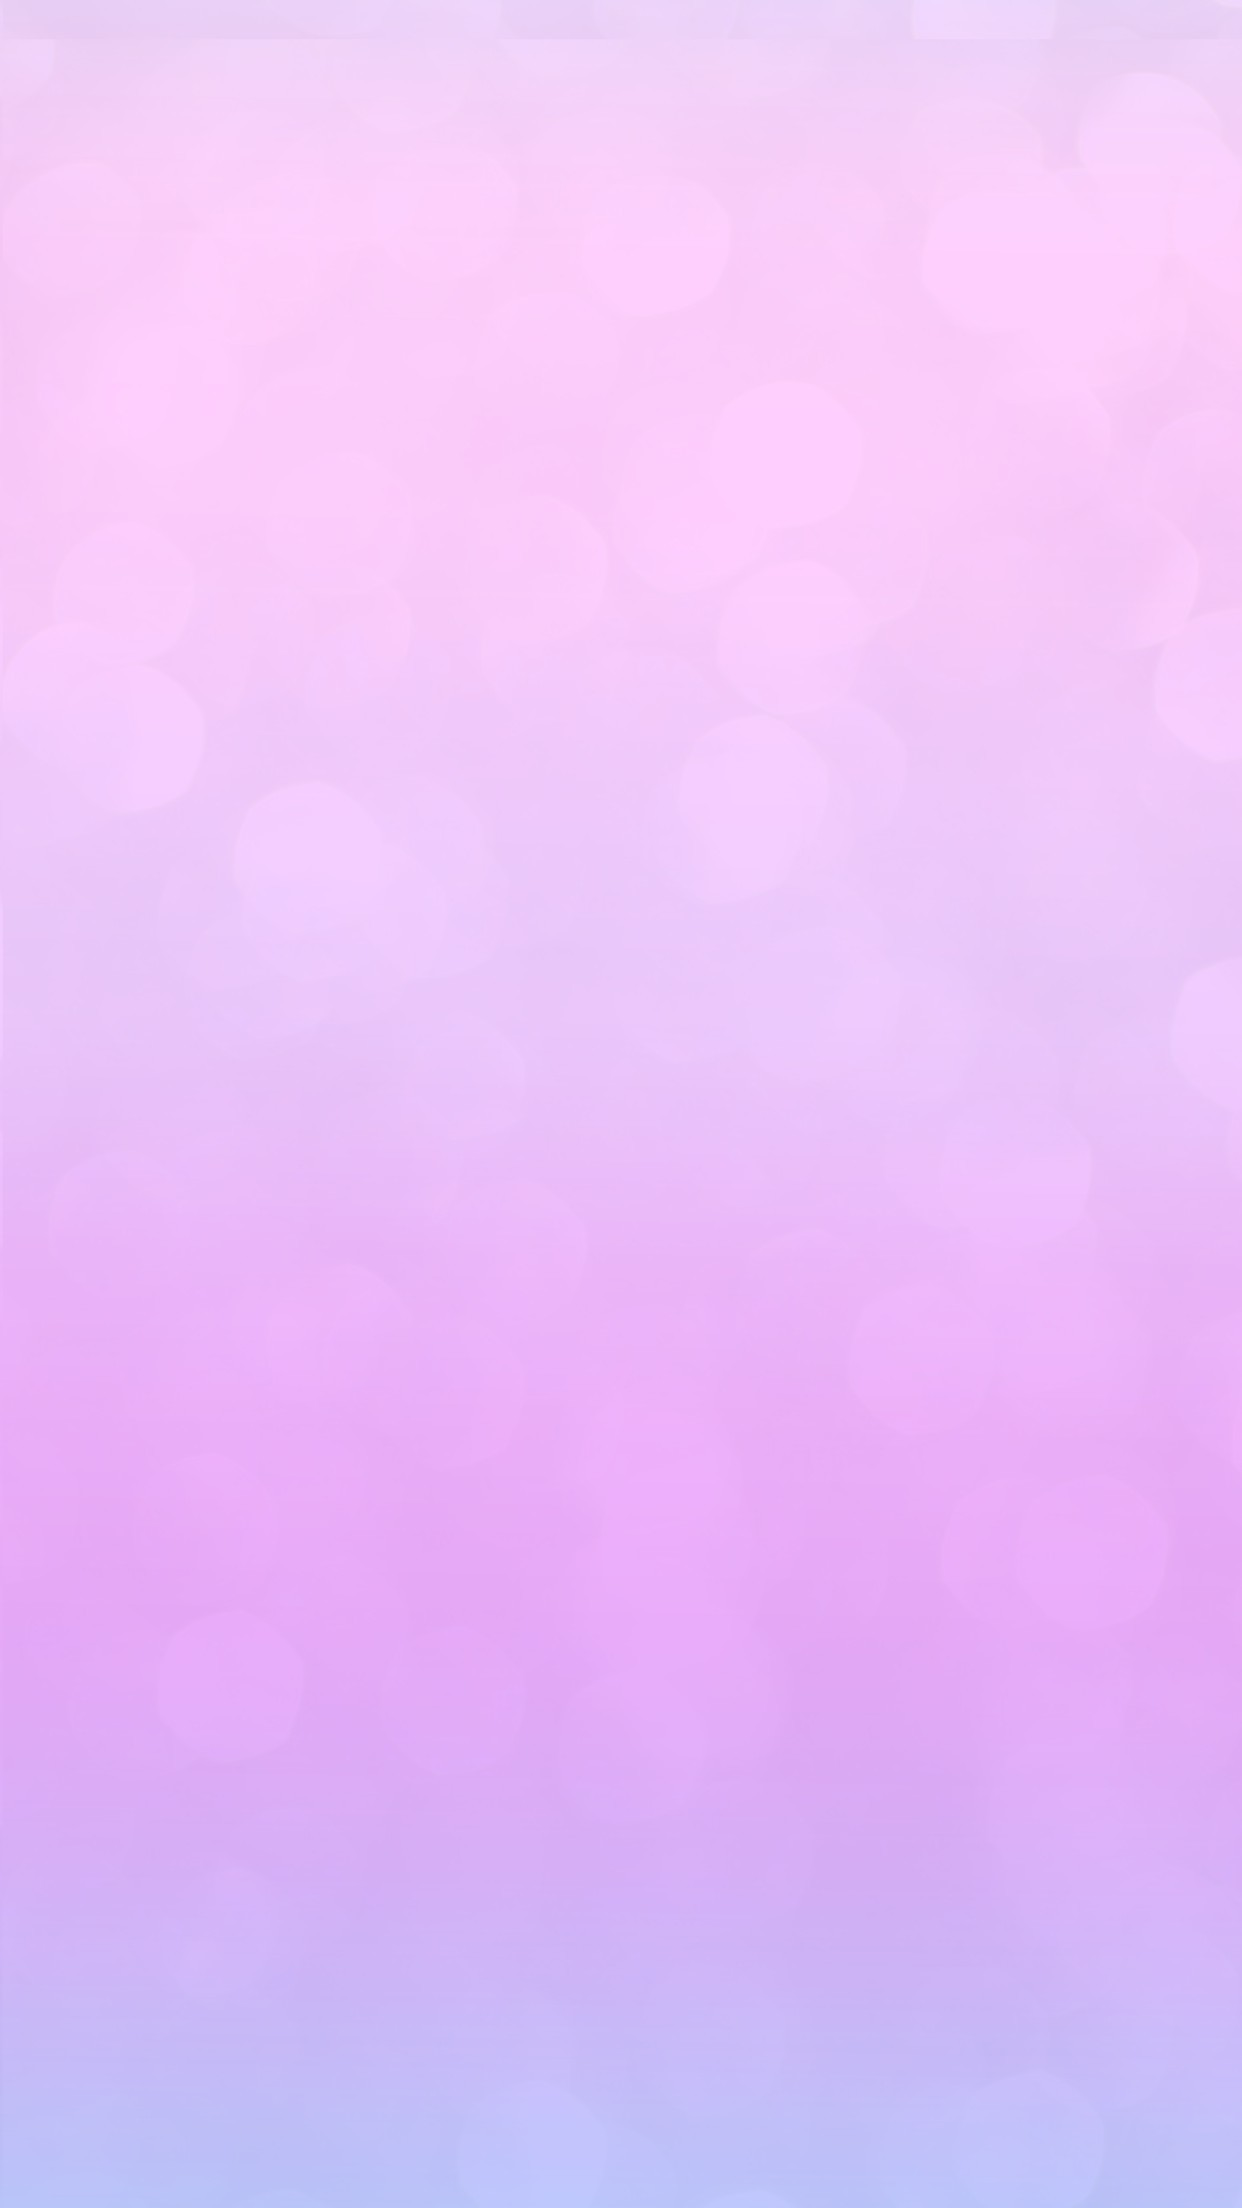 Purple Ombre Background Tumblr: Pink Ombre Wallpaper (60+ Images